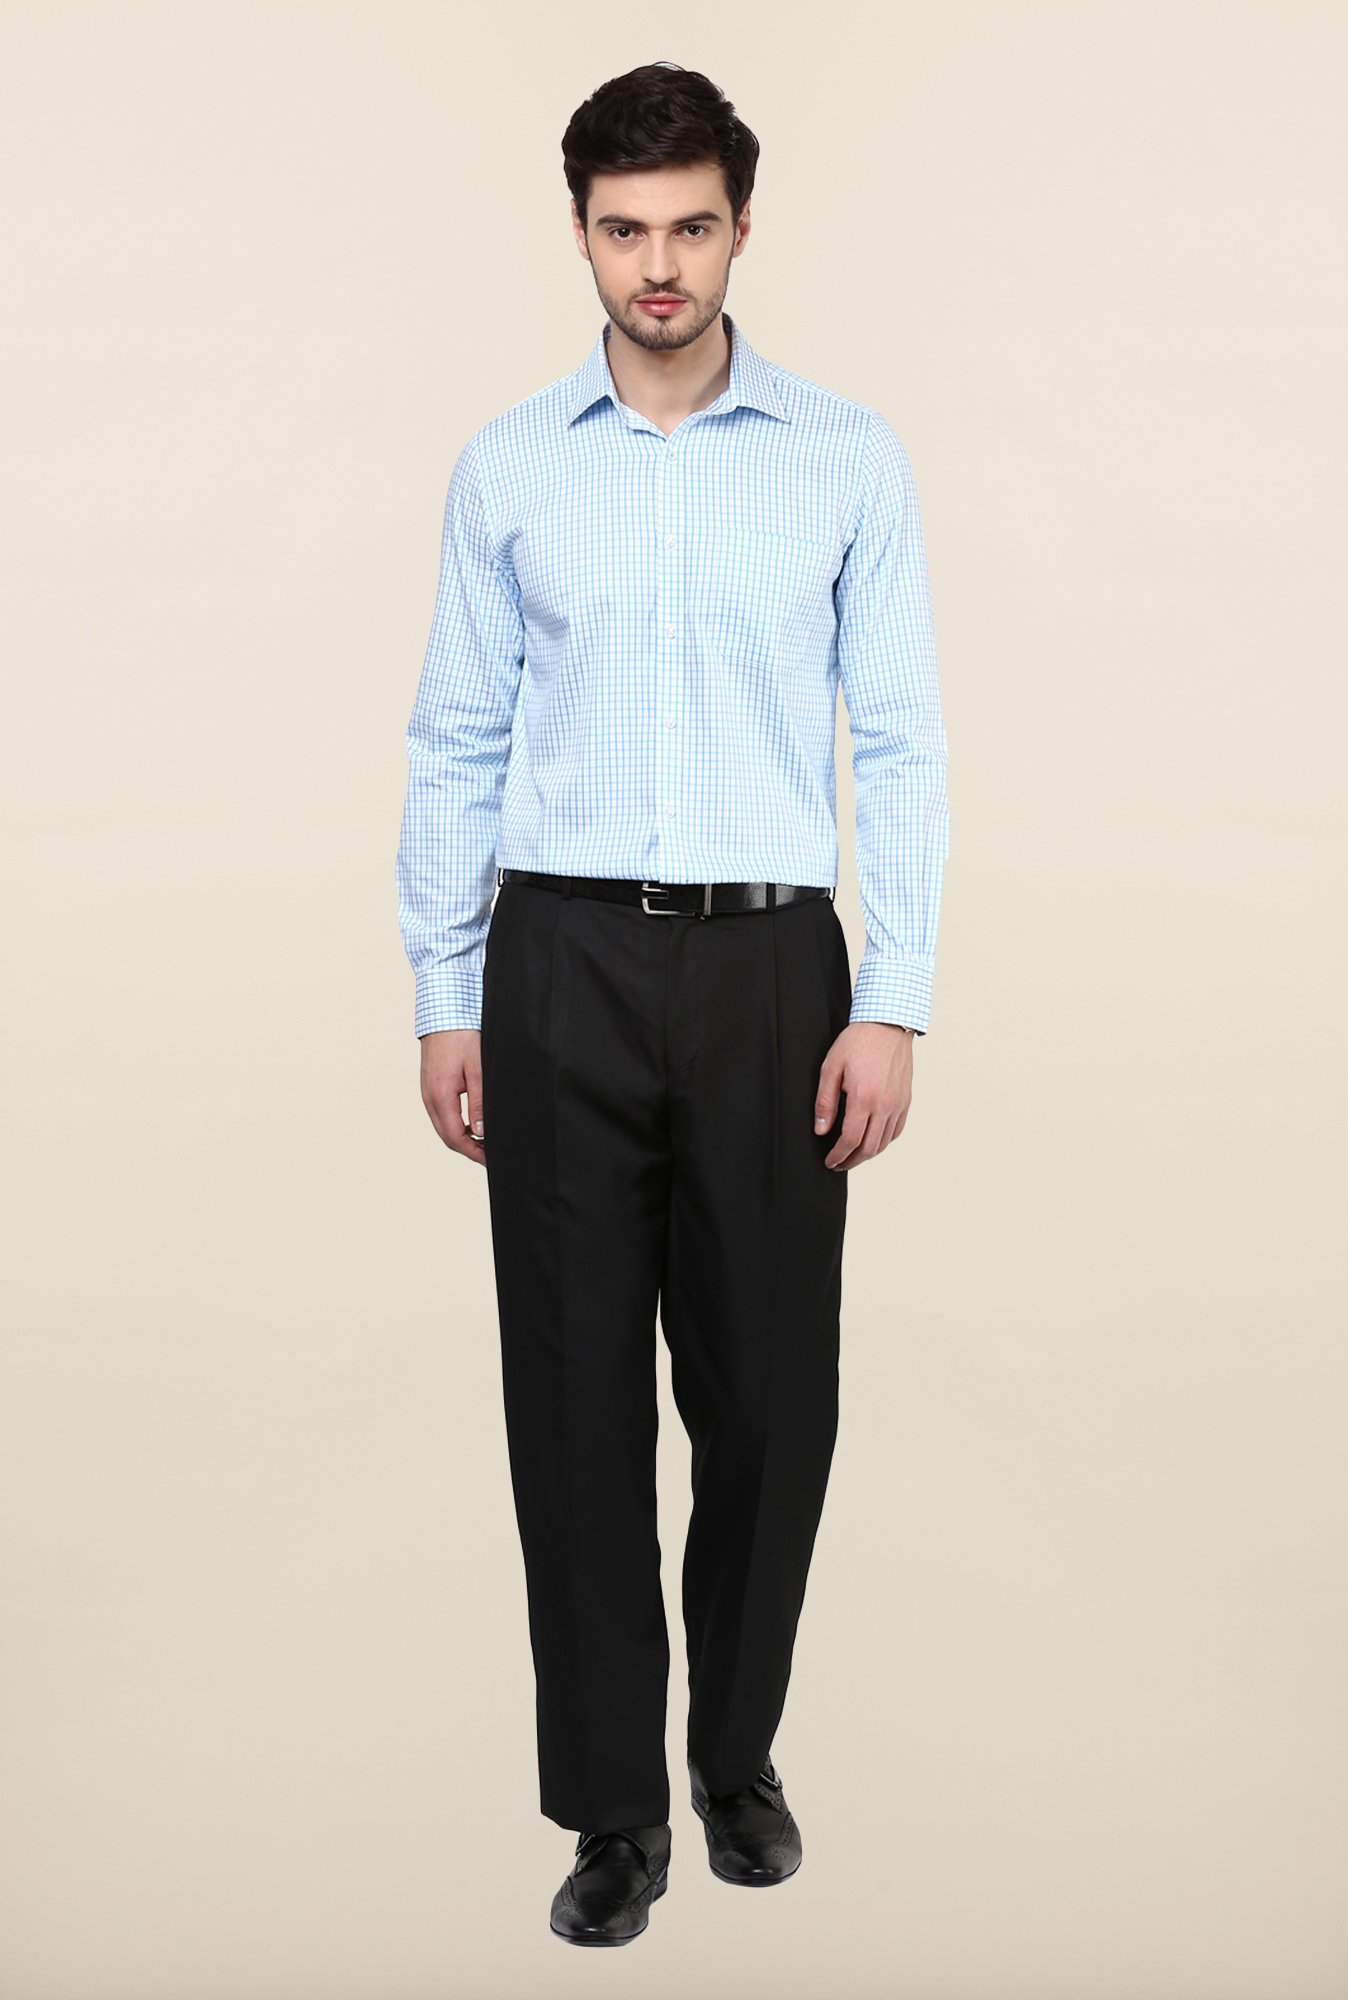 Turtle Light Blue Checkered Formal Shirt